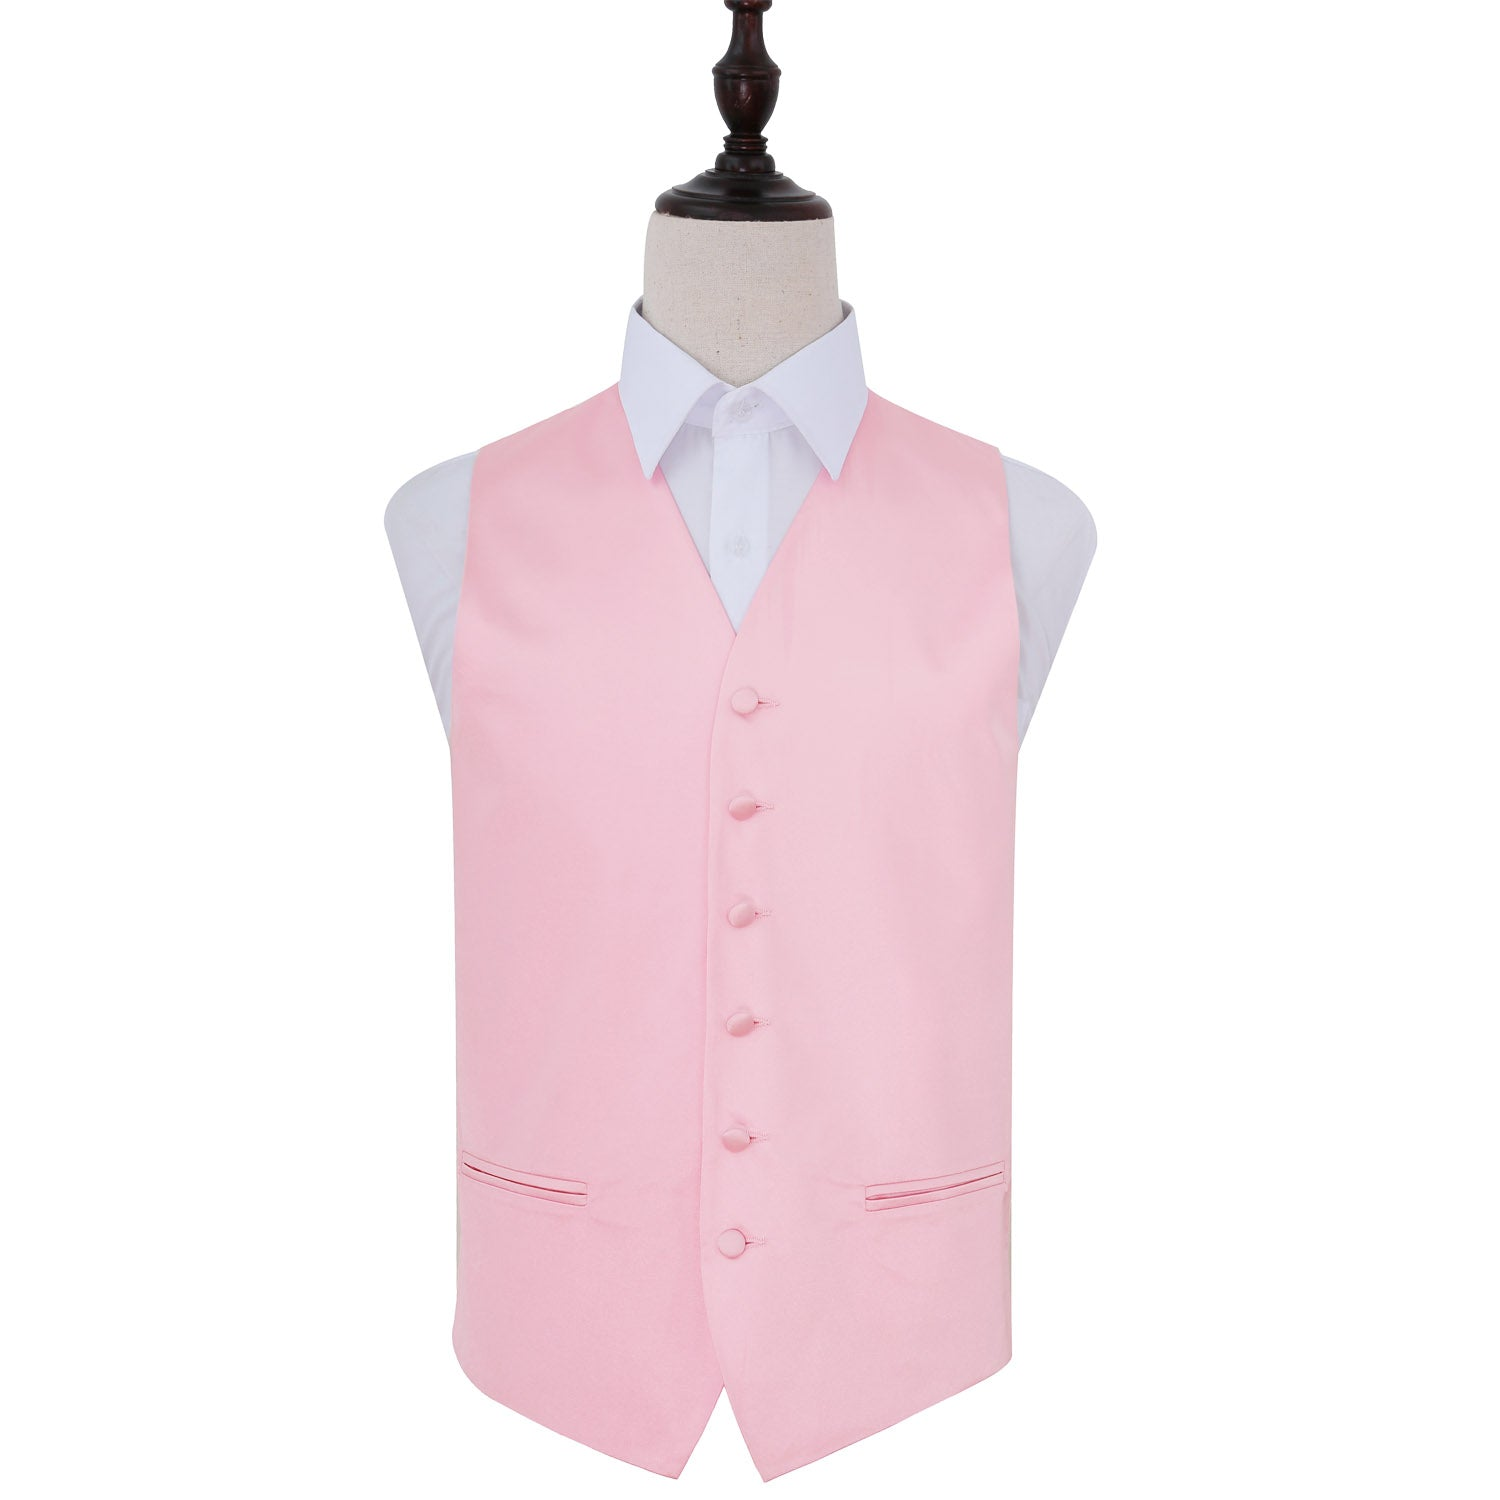 Plain Satin Waistcoat - Baby Pink, 42', Clothing by Low Cost Gifts